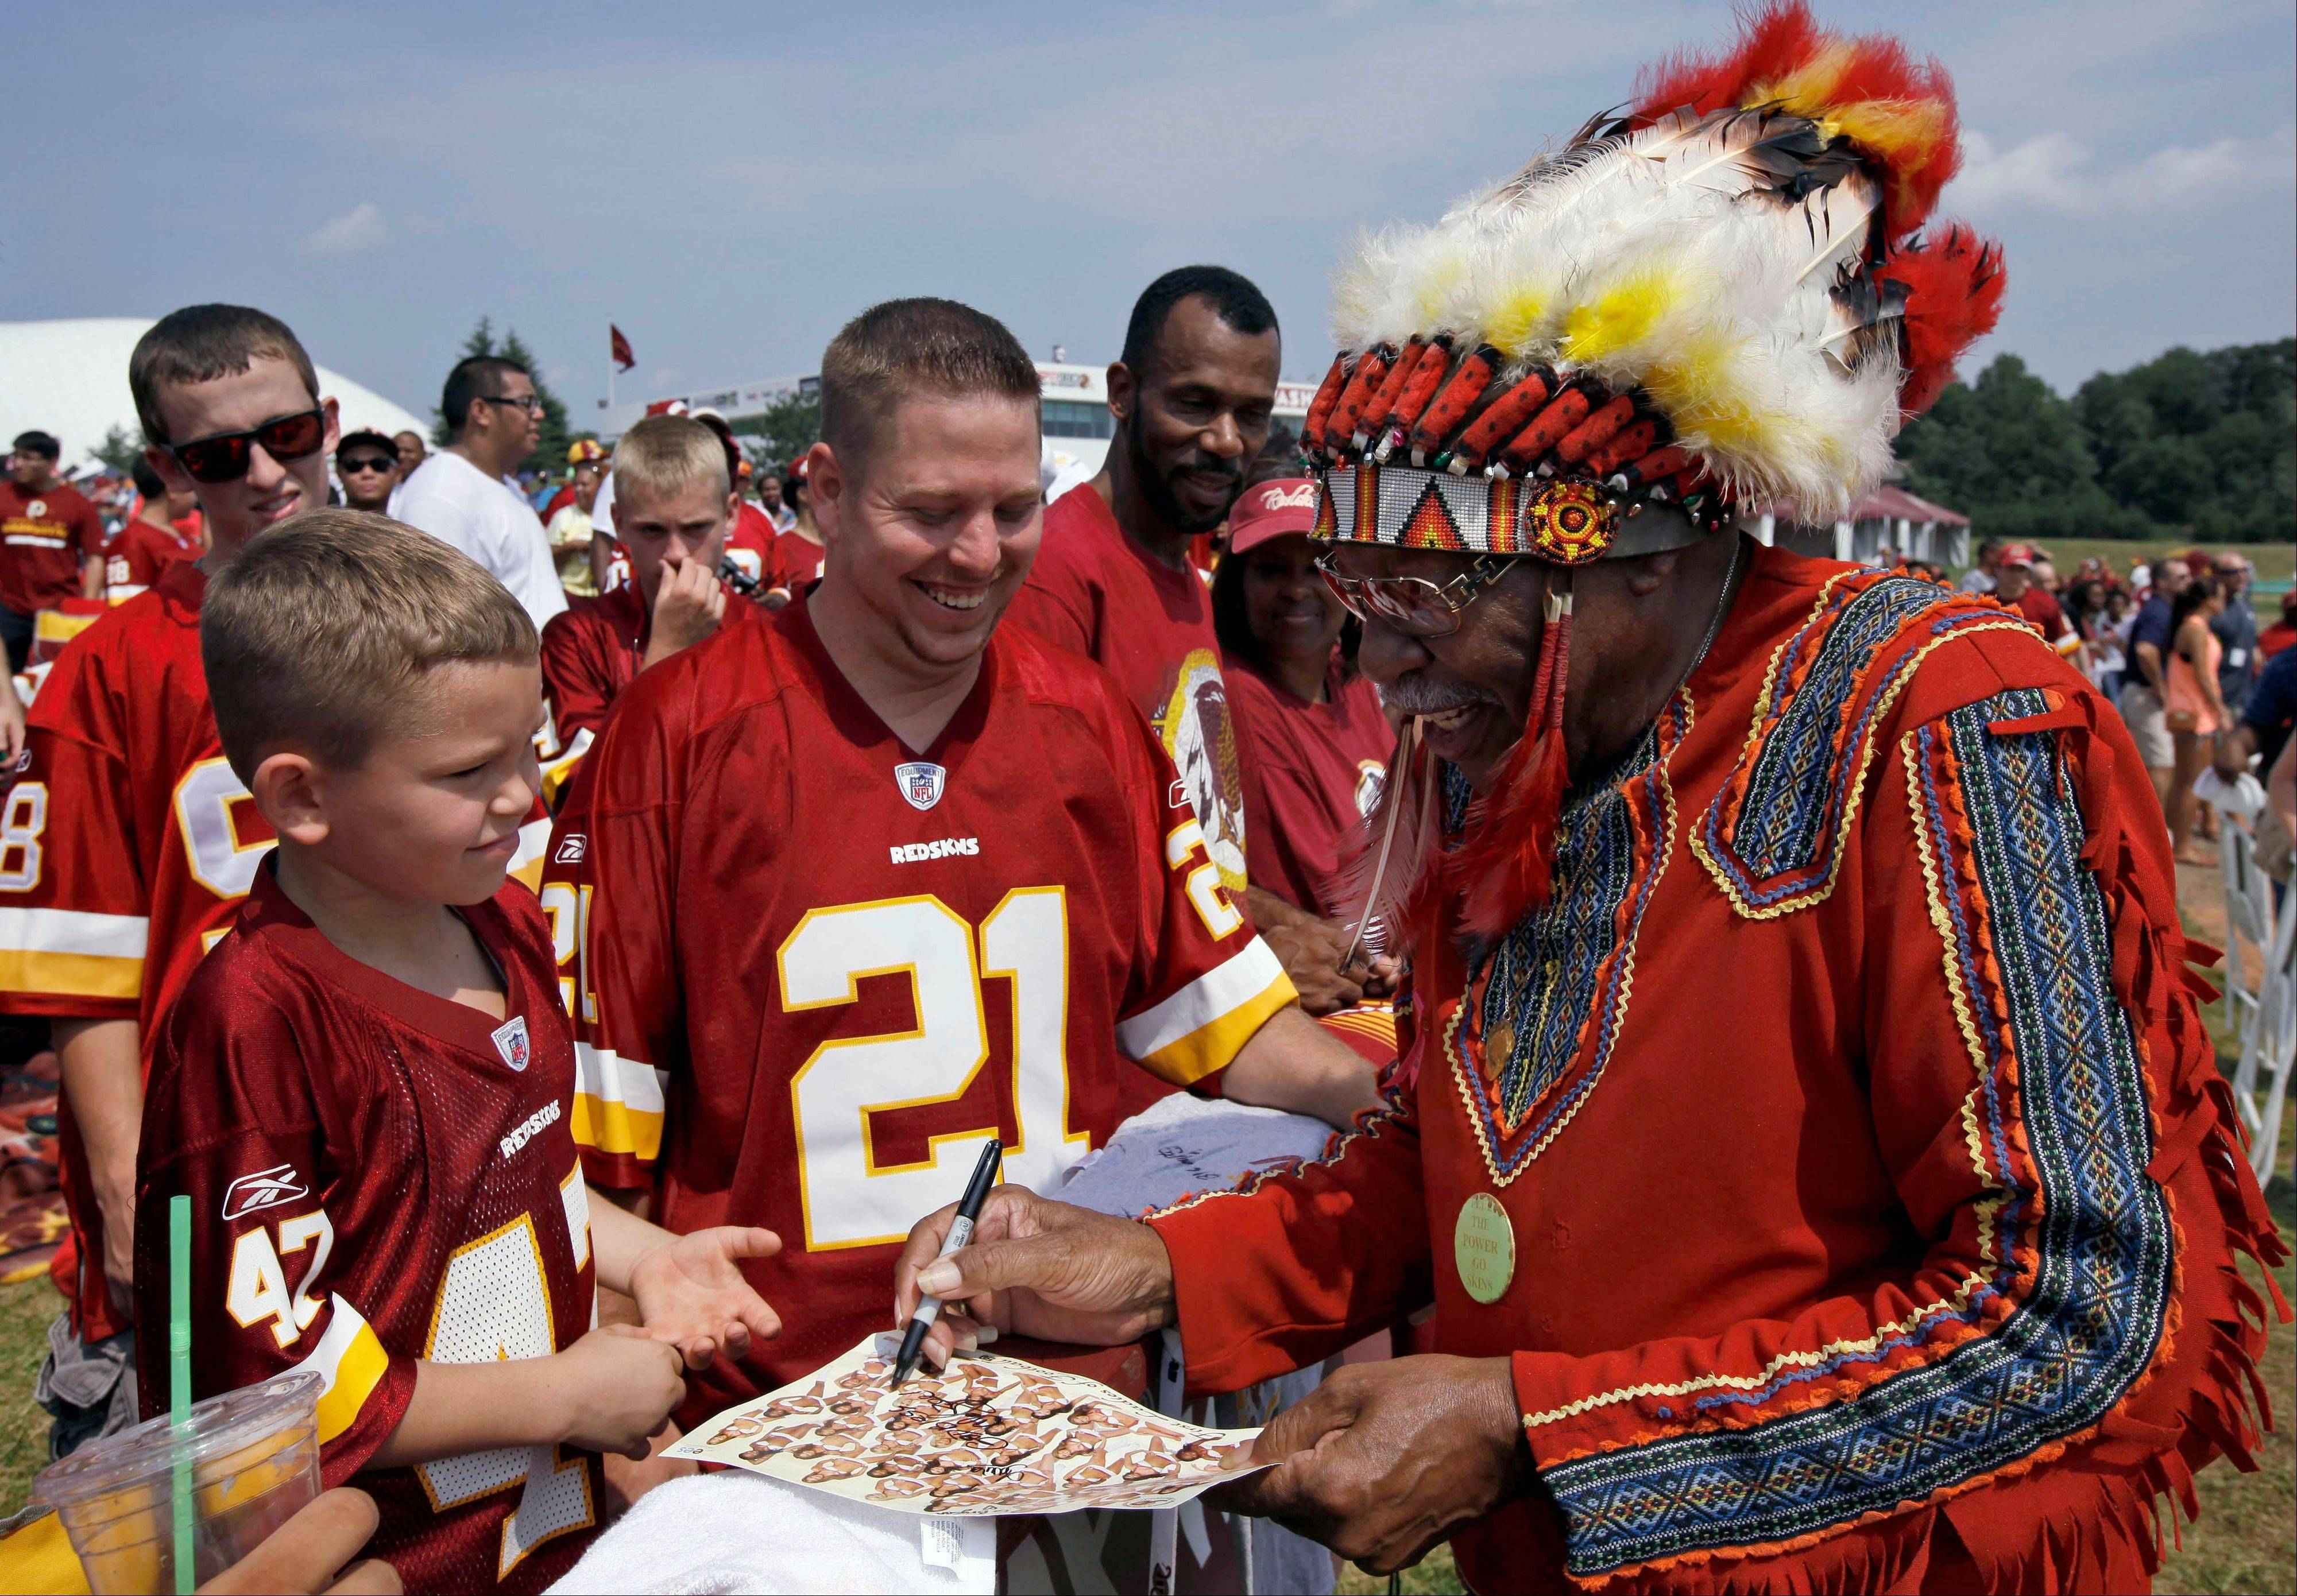 Zena �Chief Z� Williams, unofficial mascot of the Washington Redskins, signs autographs during fan appreciation day at the Redskins� NFL football training camp in 2012.